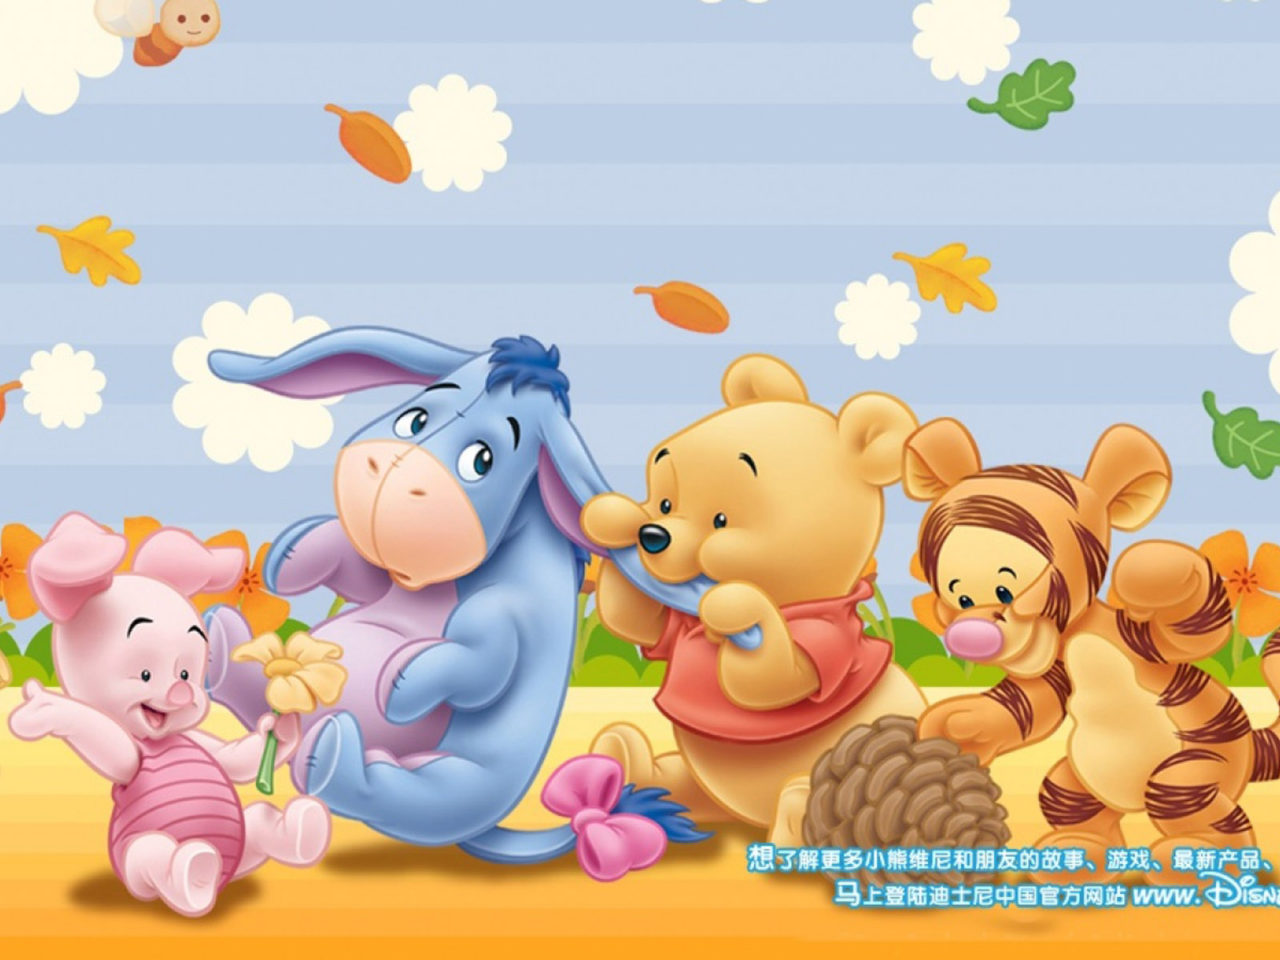 Cute Lock Screen Wallpapers For Ipad Winnie The Pooh Tigger Piglet And Eeyore Little Babies